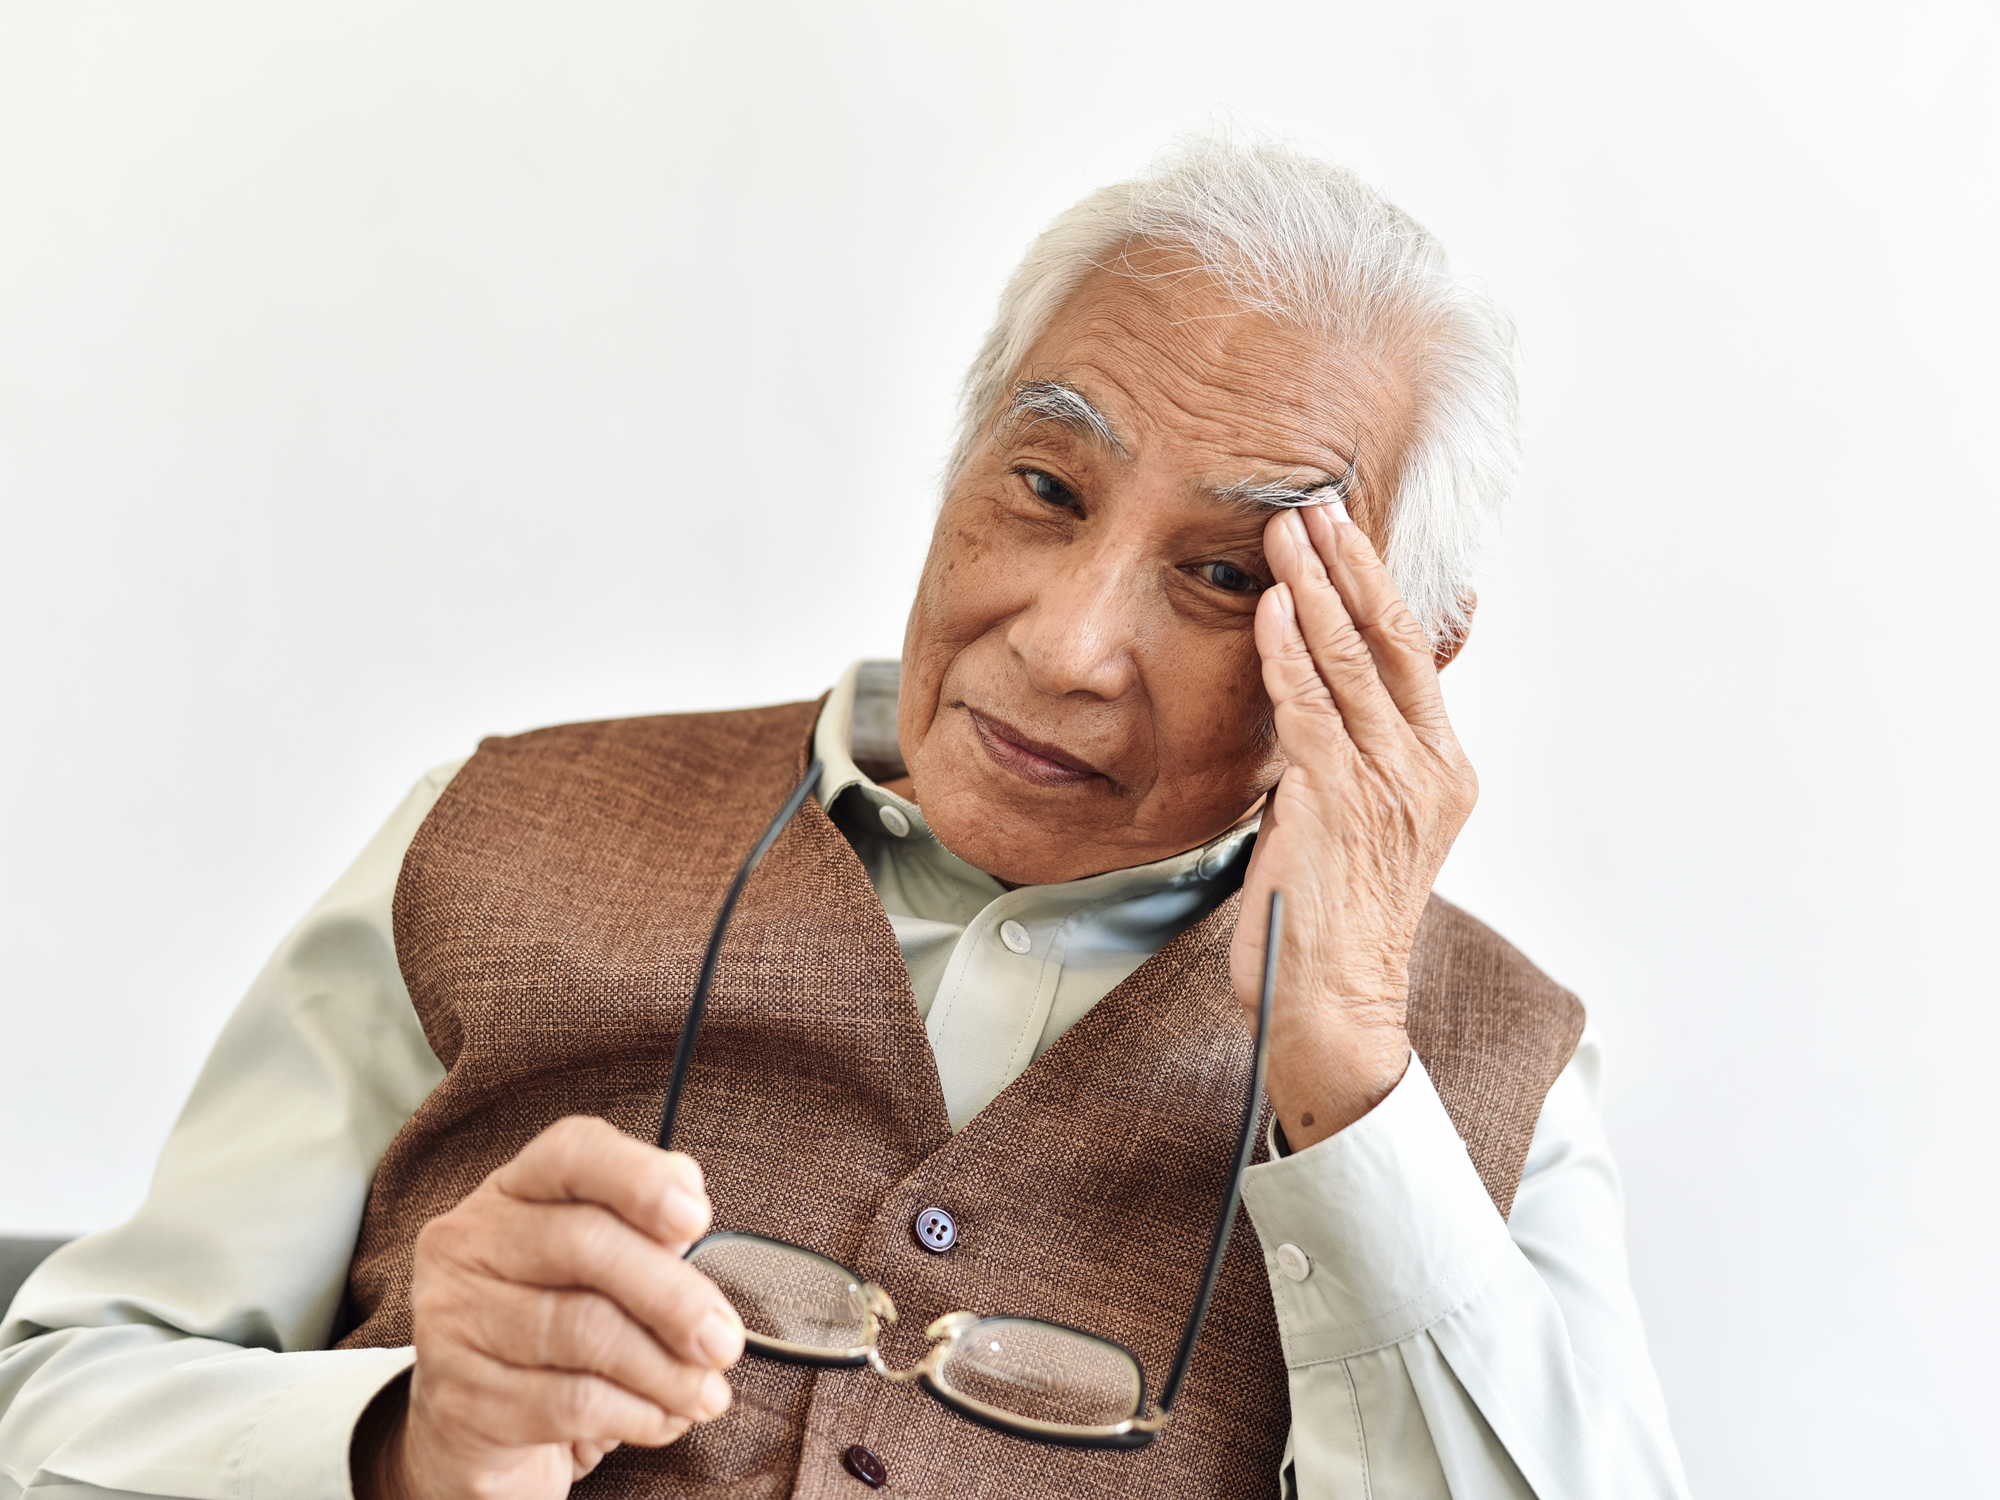 10 Things to Do Today to Prevent Vision Loss From Glaucoma